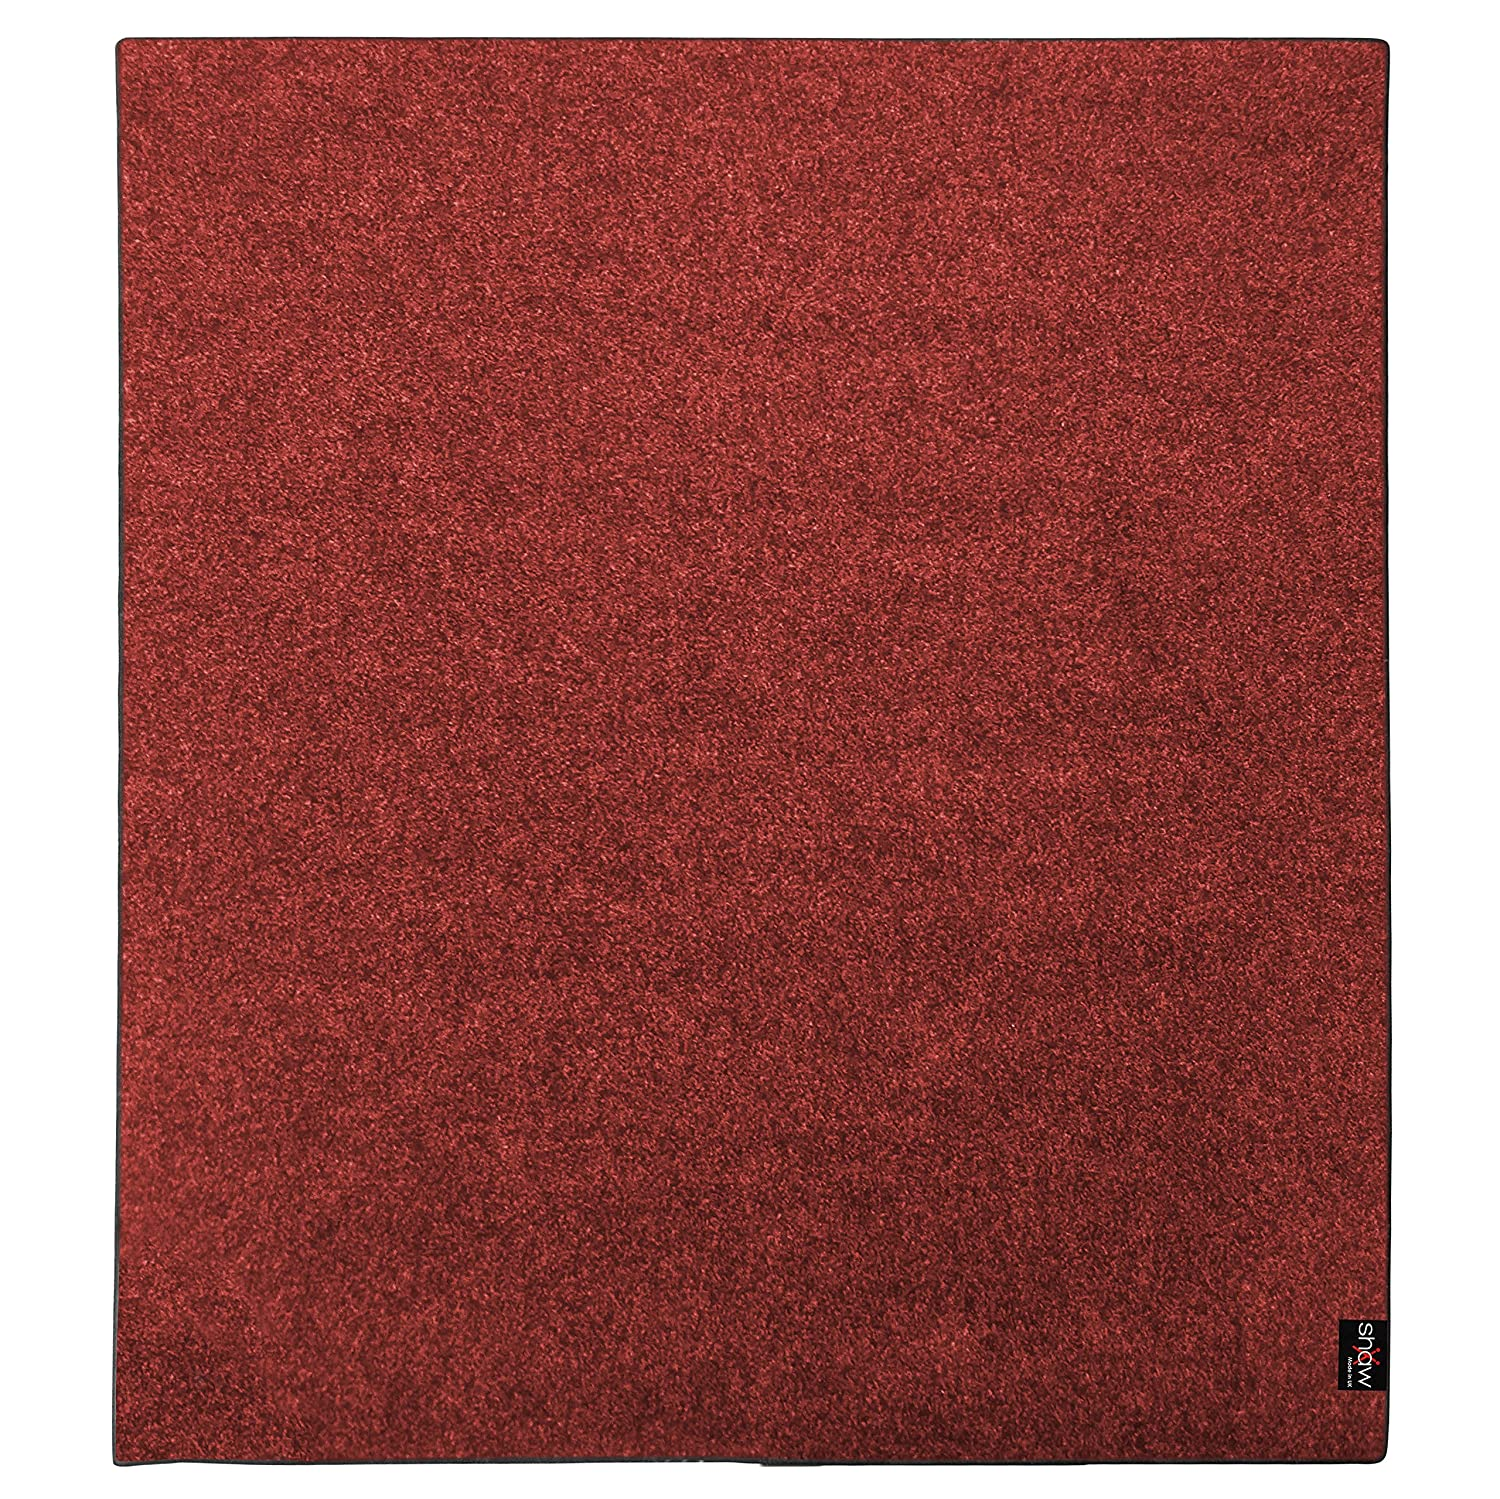 Shaw Riser Drum Mat (2m x 2.4m) with 2 straps - Red